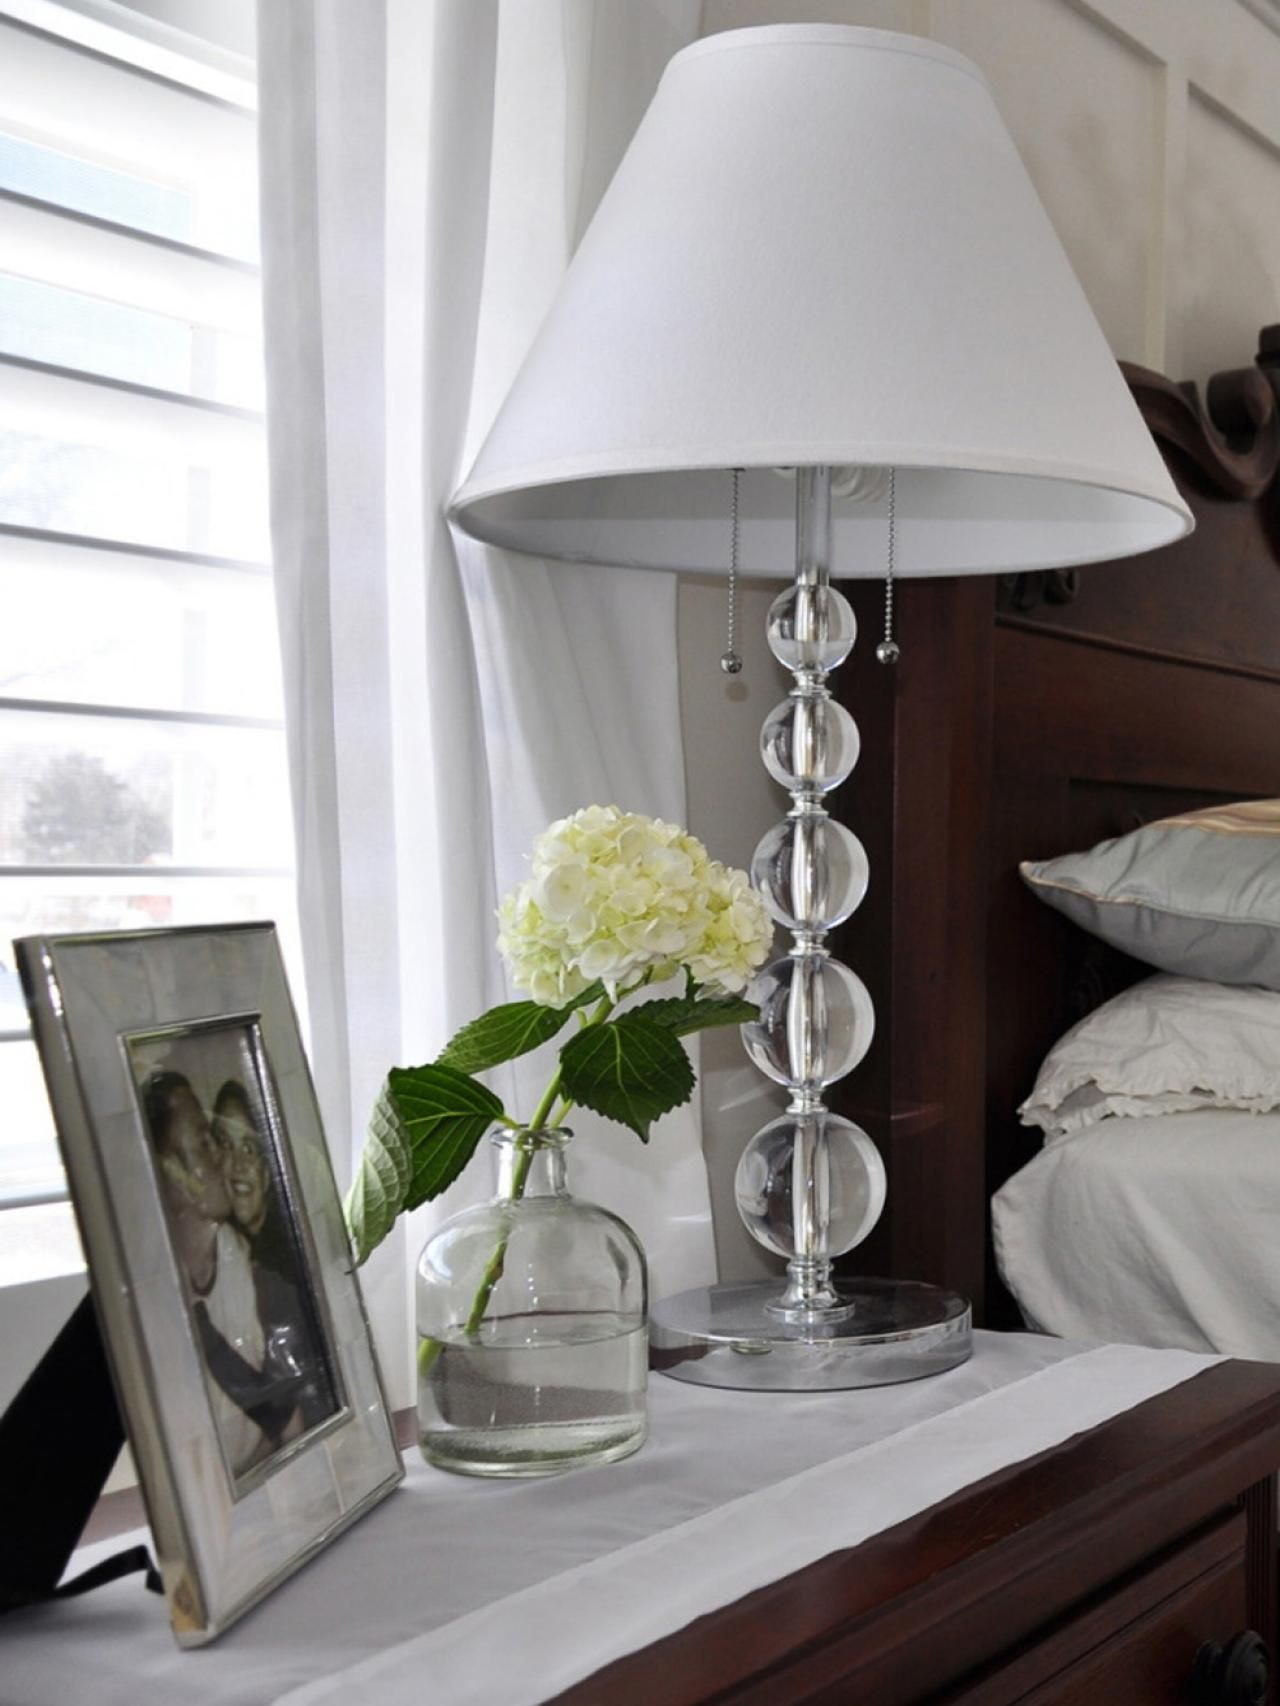 10 Ways to Display Bedroom Frames | Its always, Happy and Bedside lamp